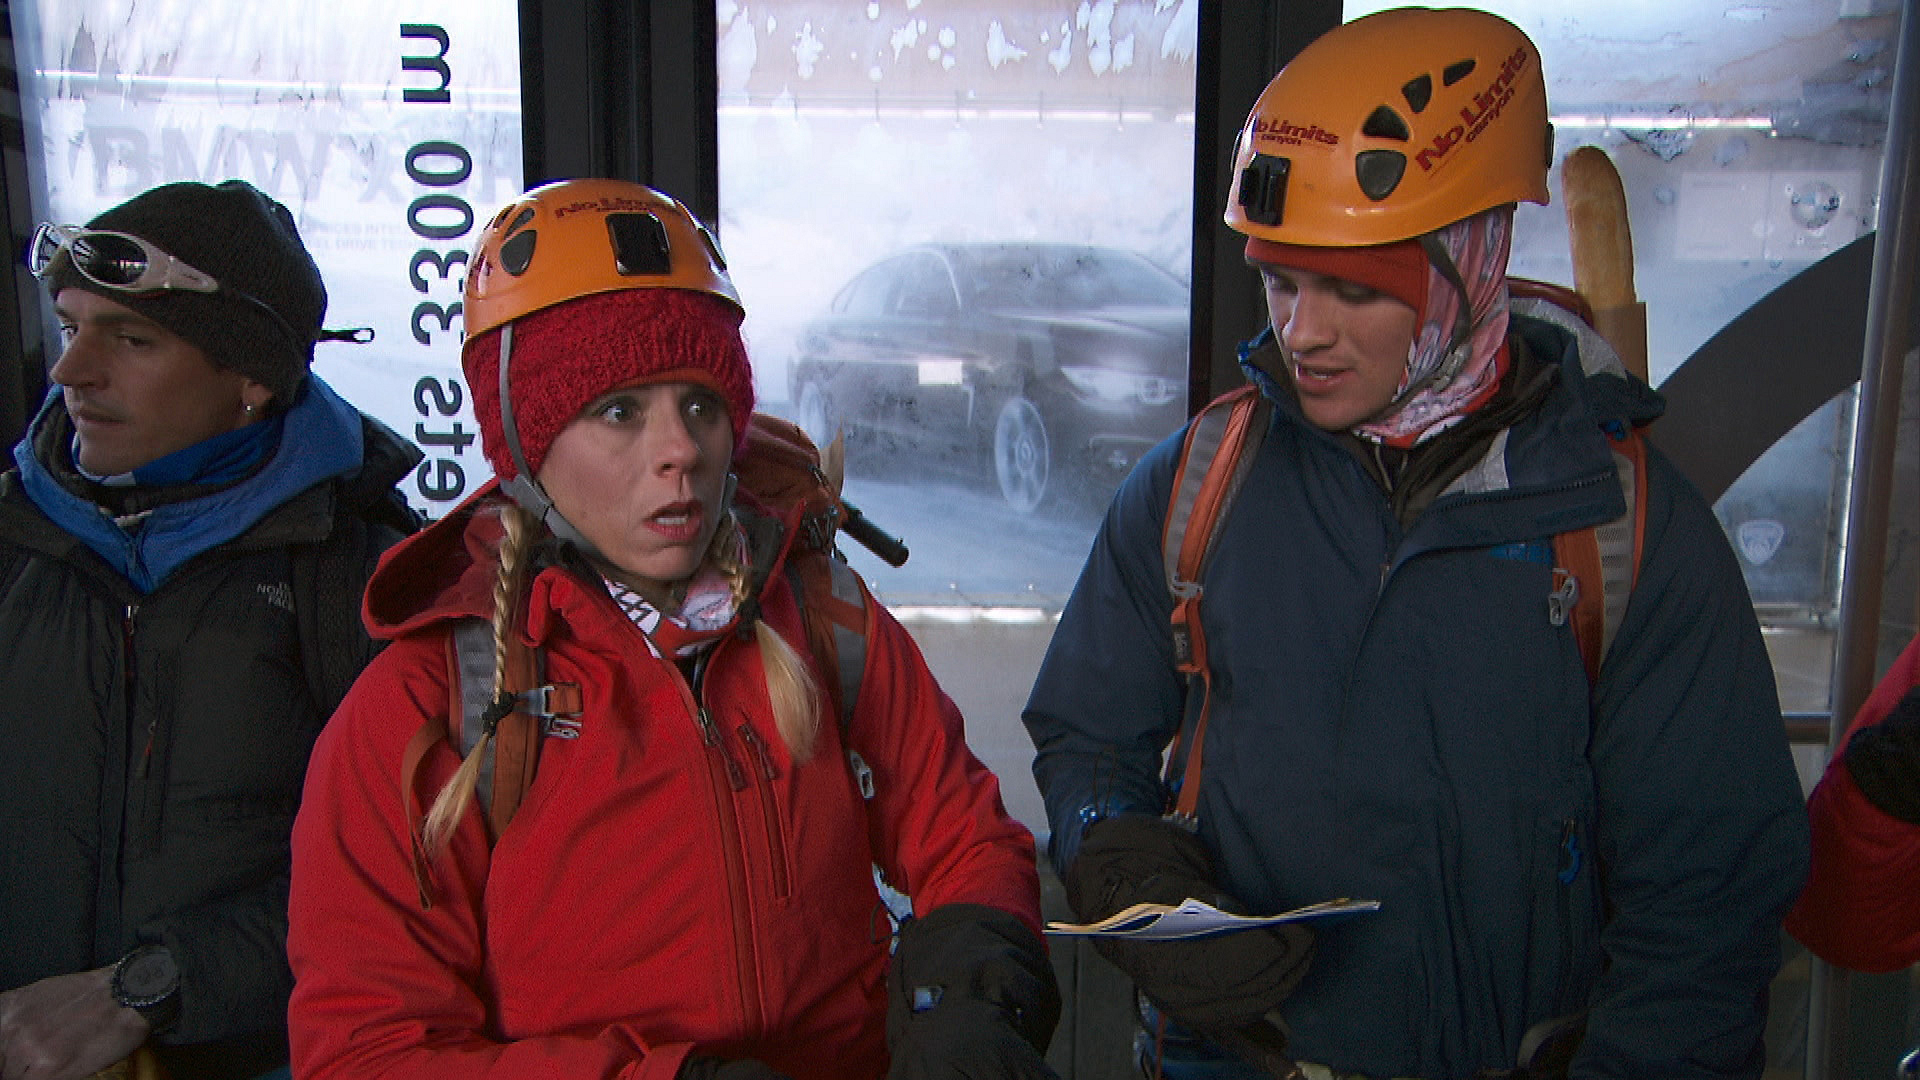 At the Route Marker, Sheri and Cole get ready to take a gondola to the upper station.